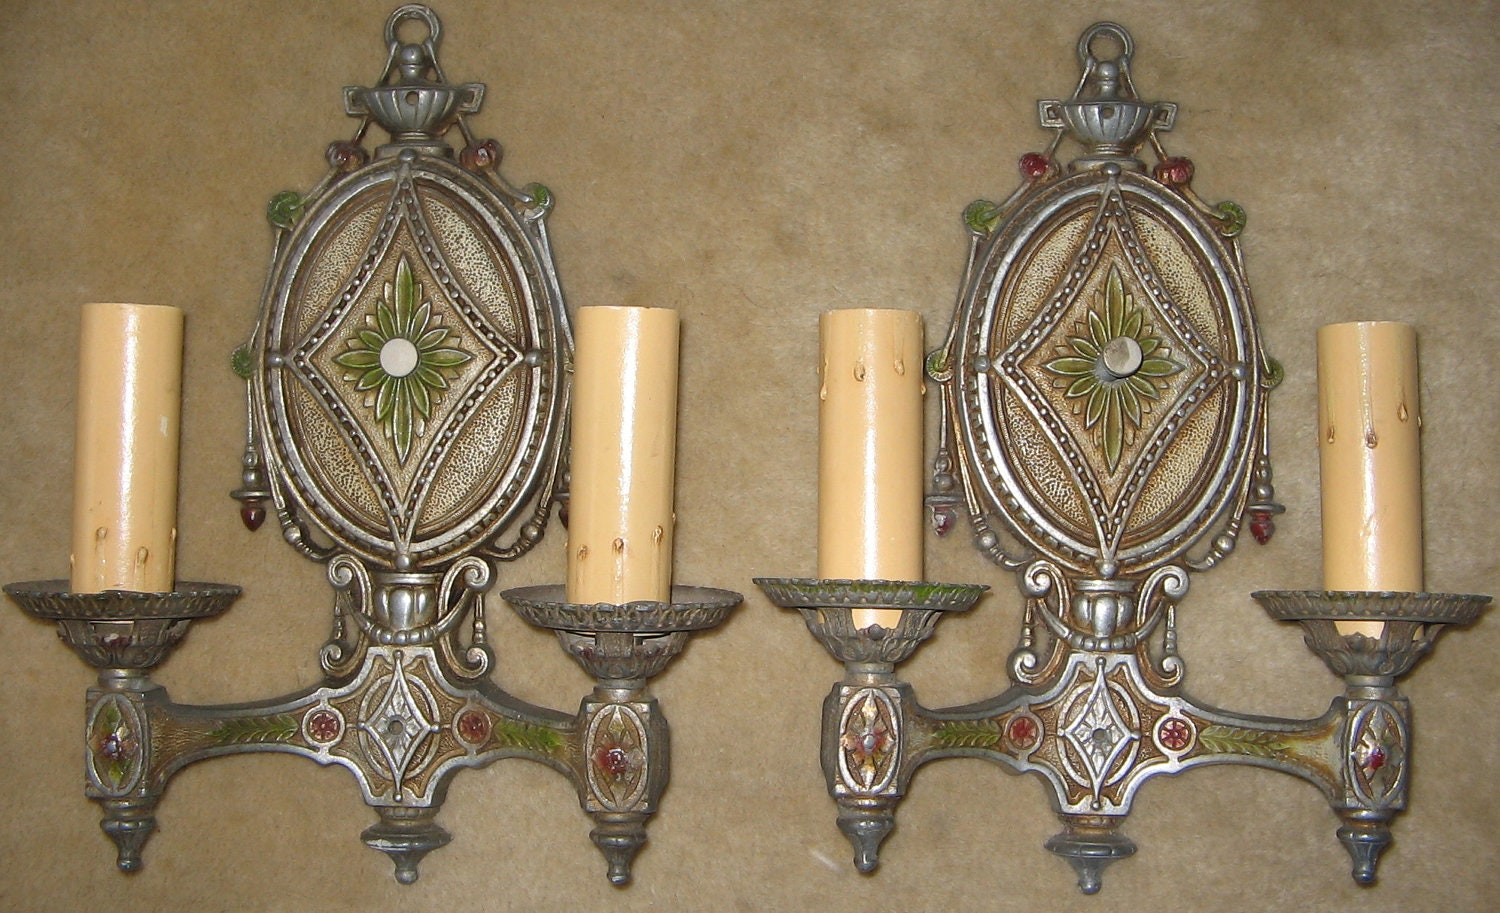 Vintage Pair of Double Candle Wall Sconce Light Fixtures on